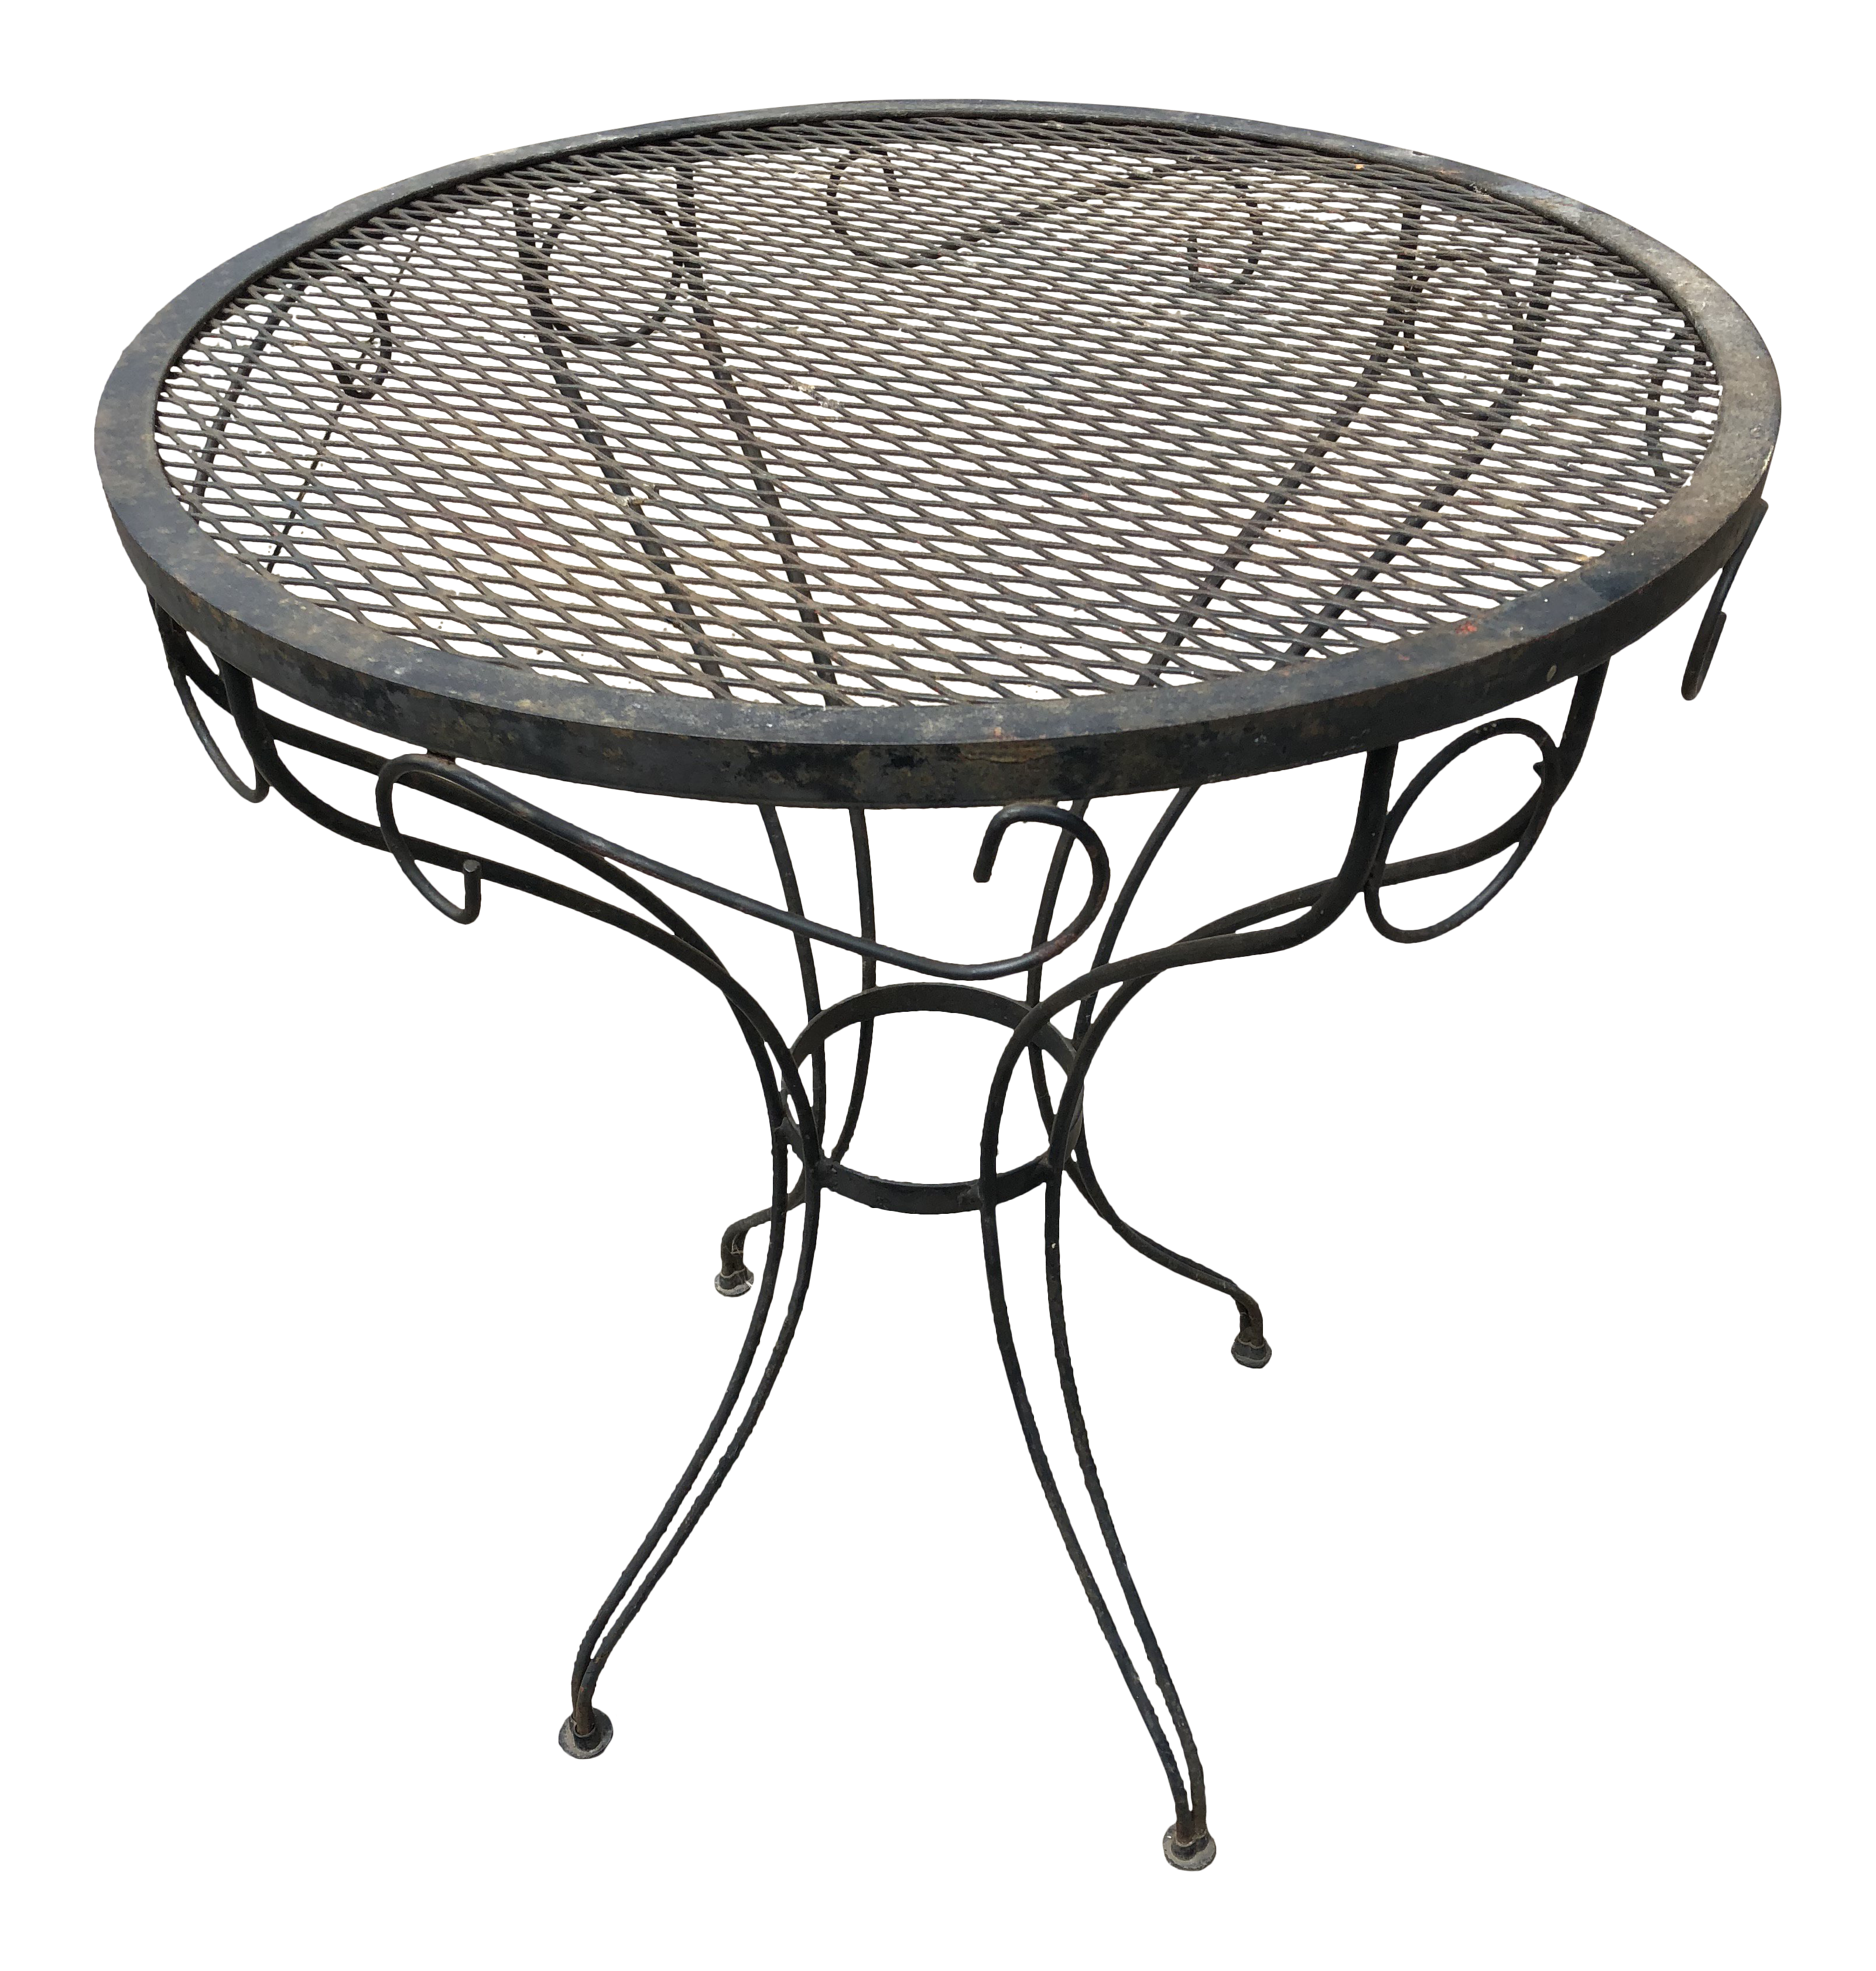 vintage used furniture for sale chairish 1950s Style Interior Decorating 1970s boho chic russell woodard small bistro table